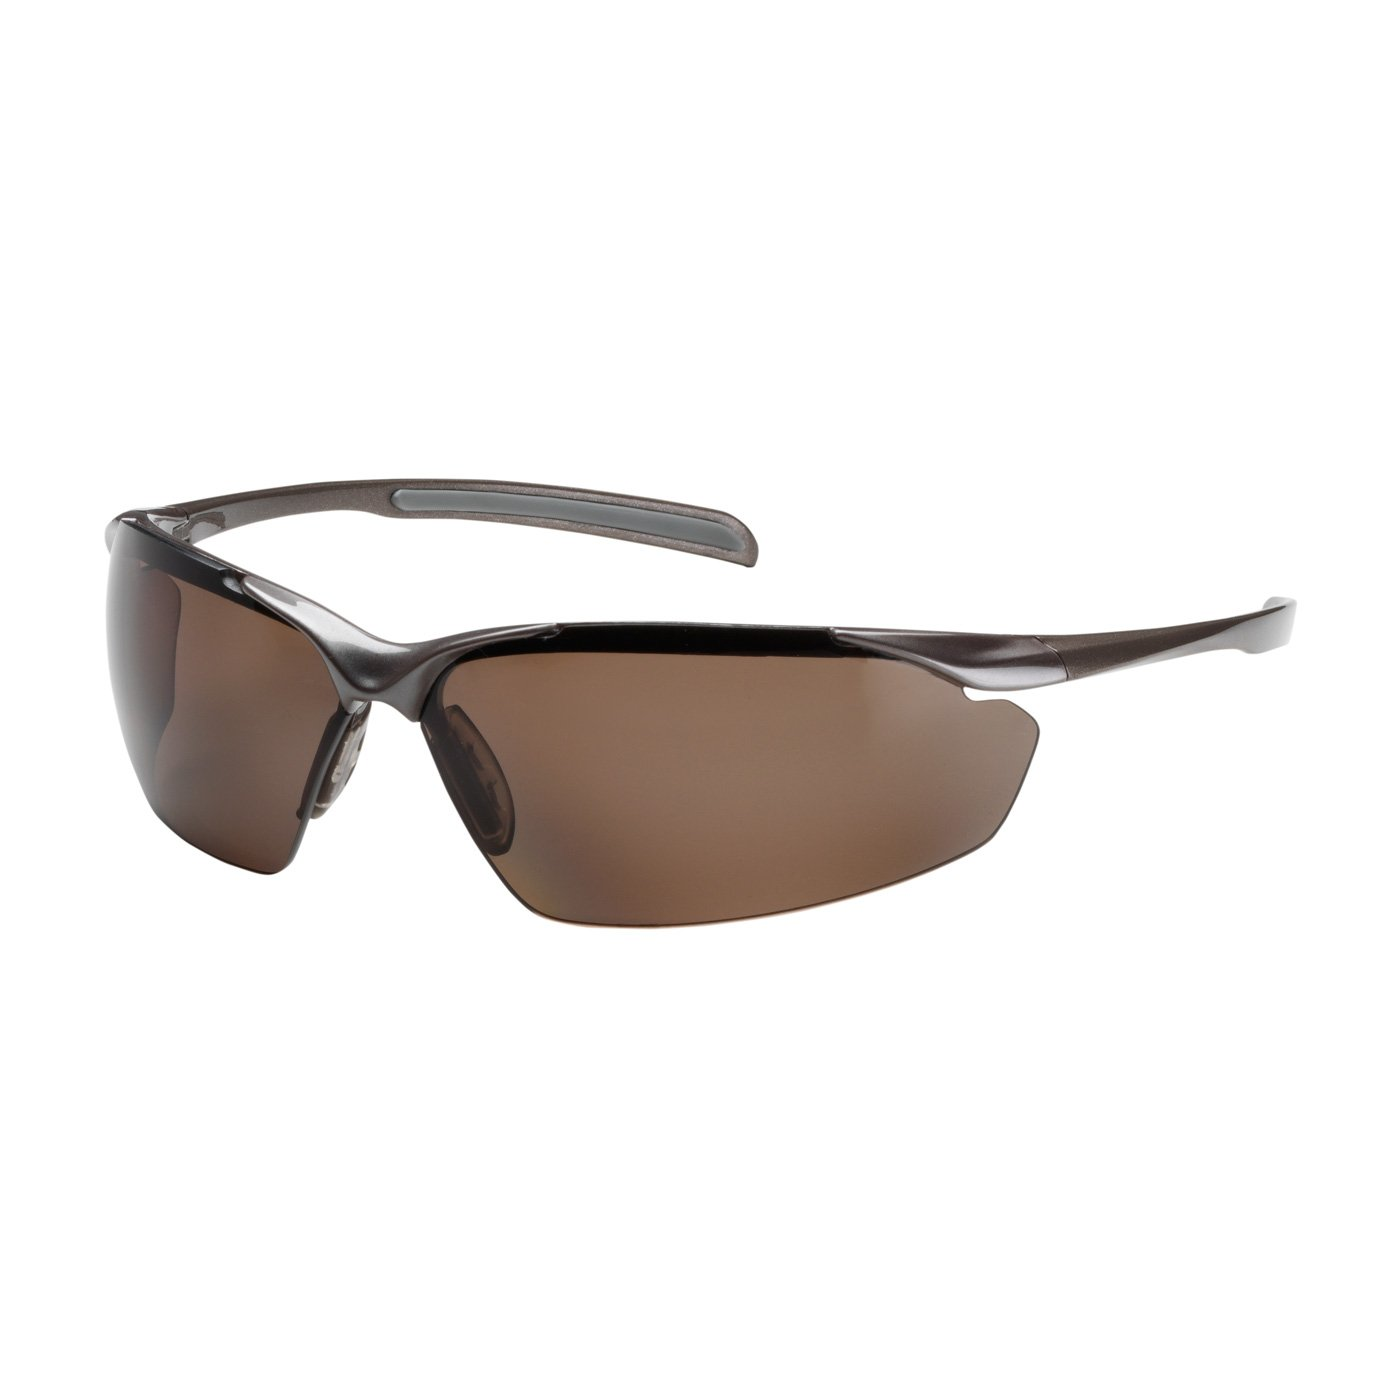 Commander 250-33-1042 Semi-Rimless Safety Glasses with Gloss Bronze Frame, Polarized Brown Lens and Anti-Scratch Coating